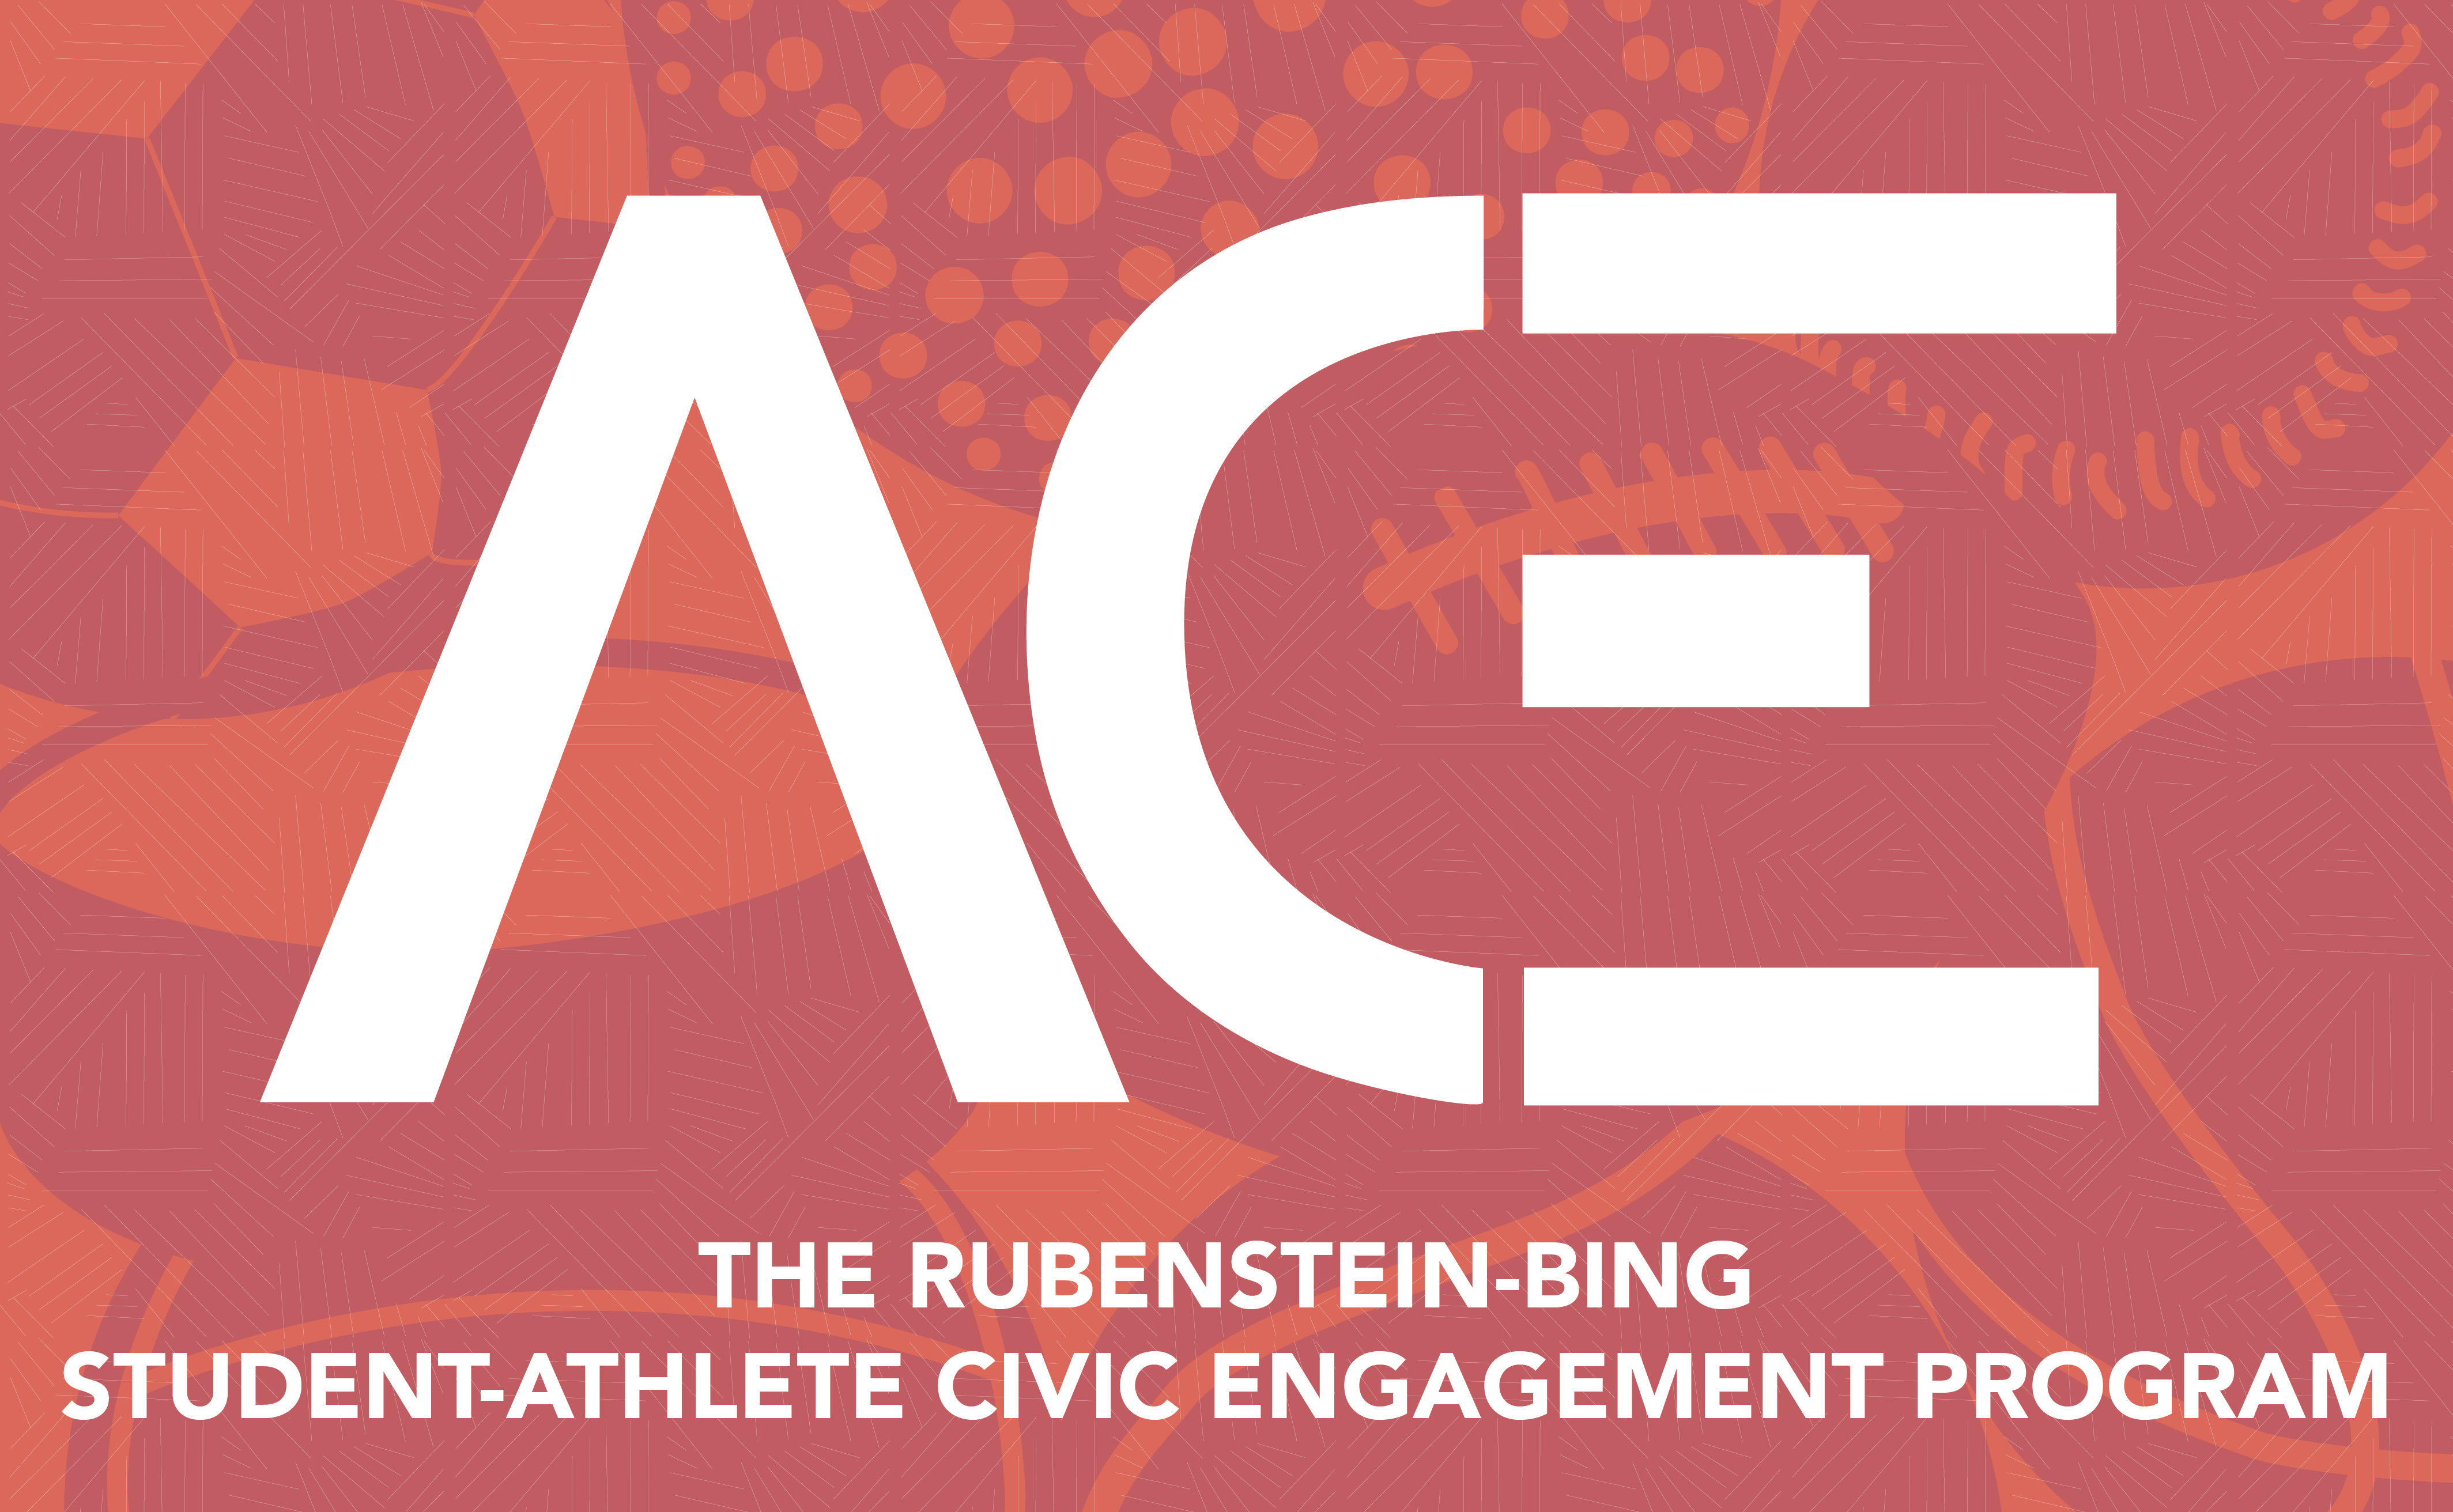 The Rubenstein Bing Student Athlete Civic Engagement Program